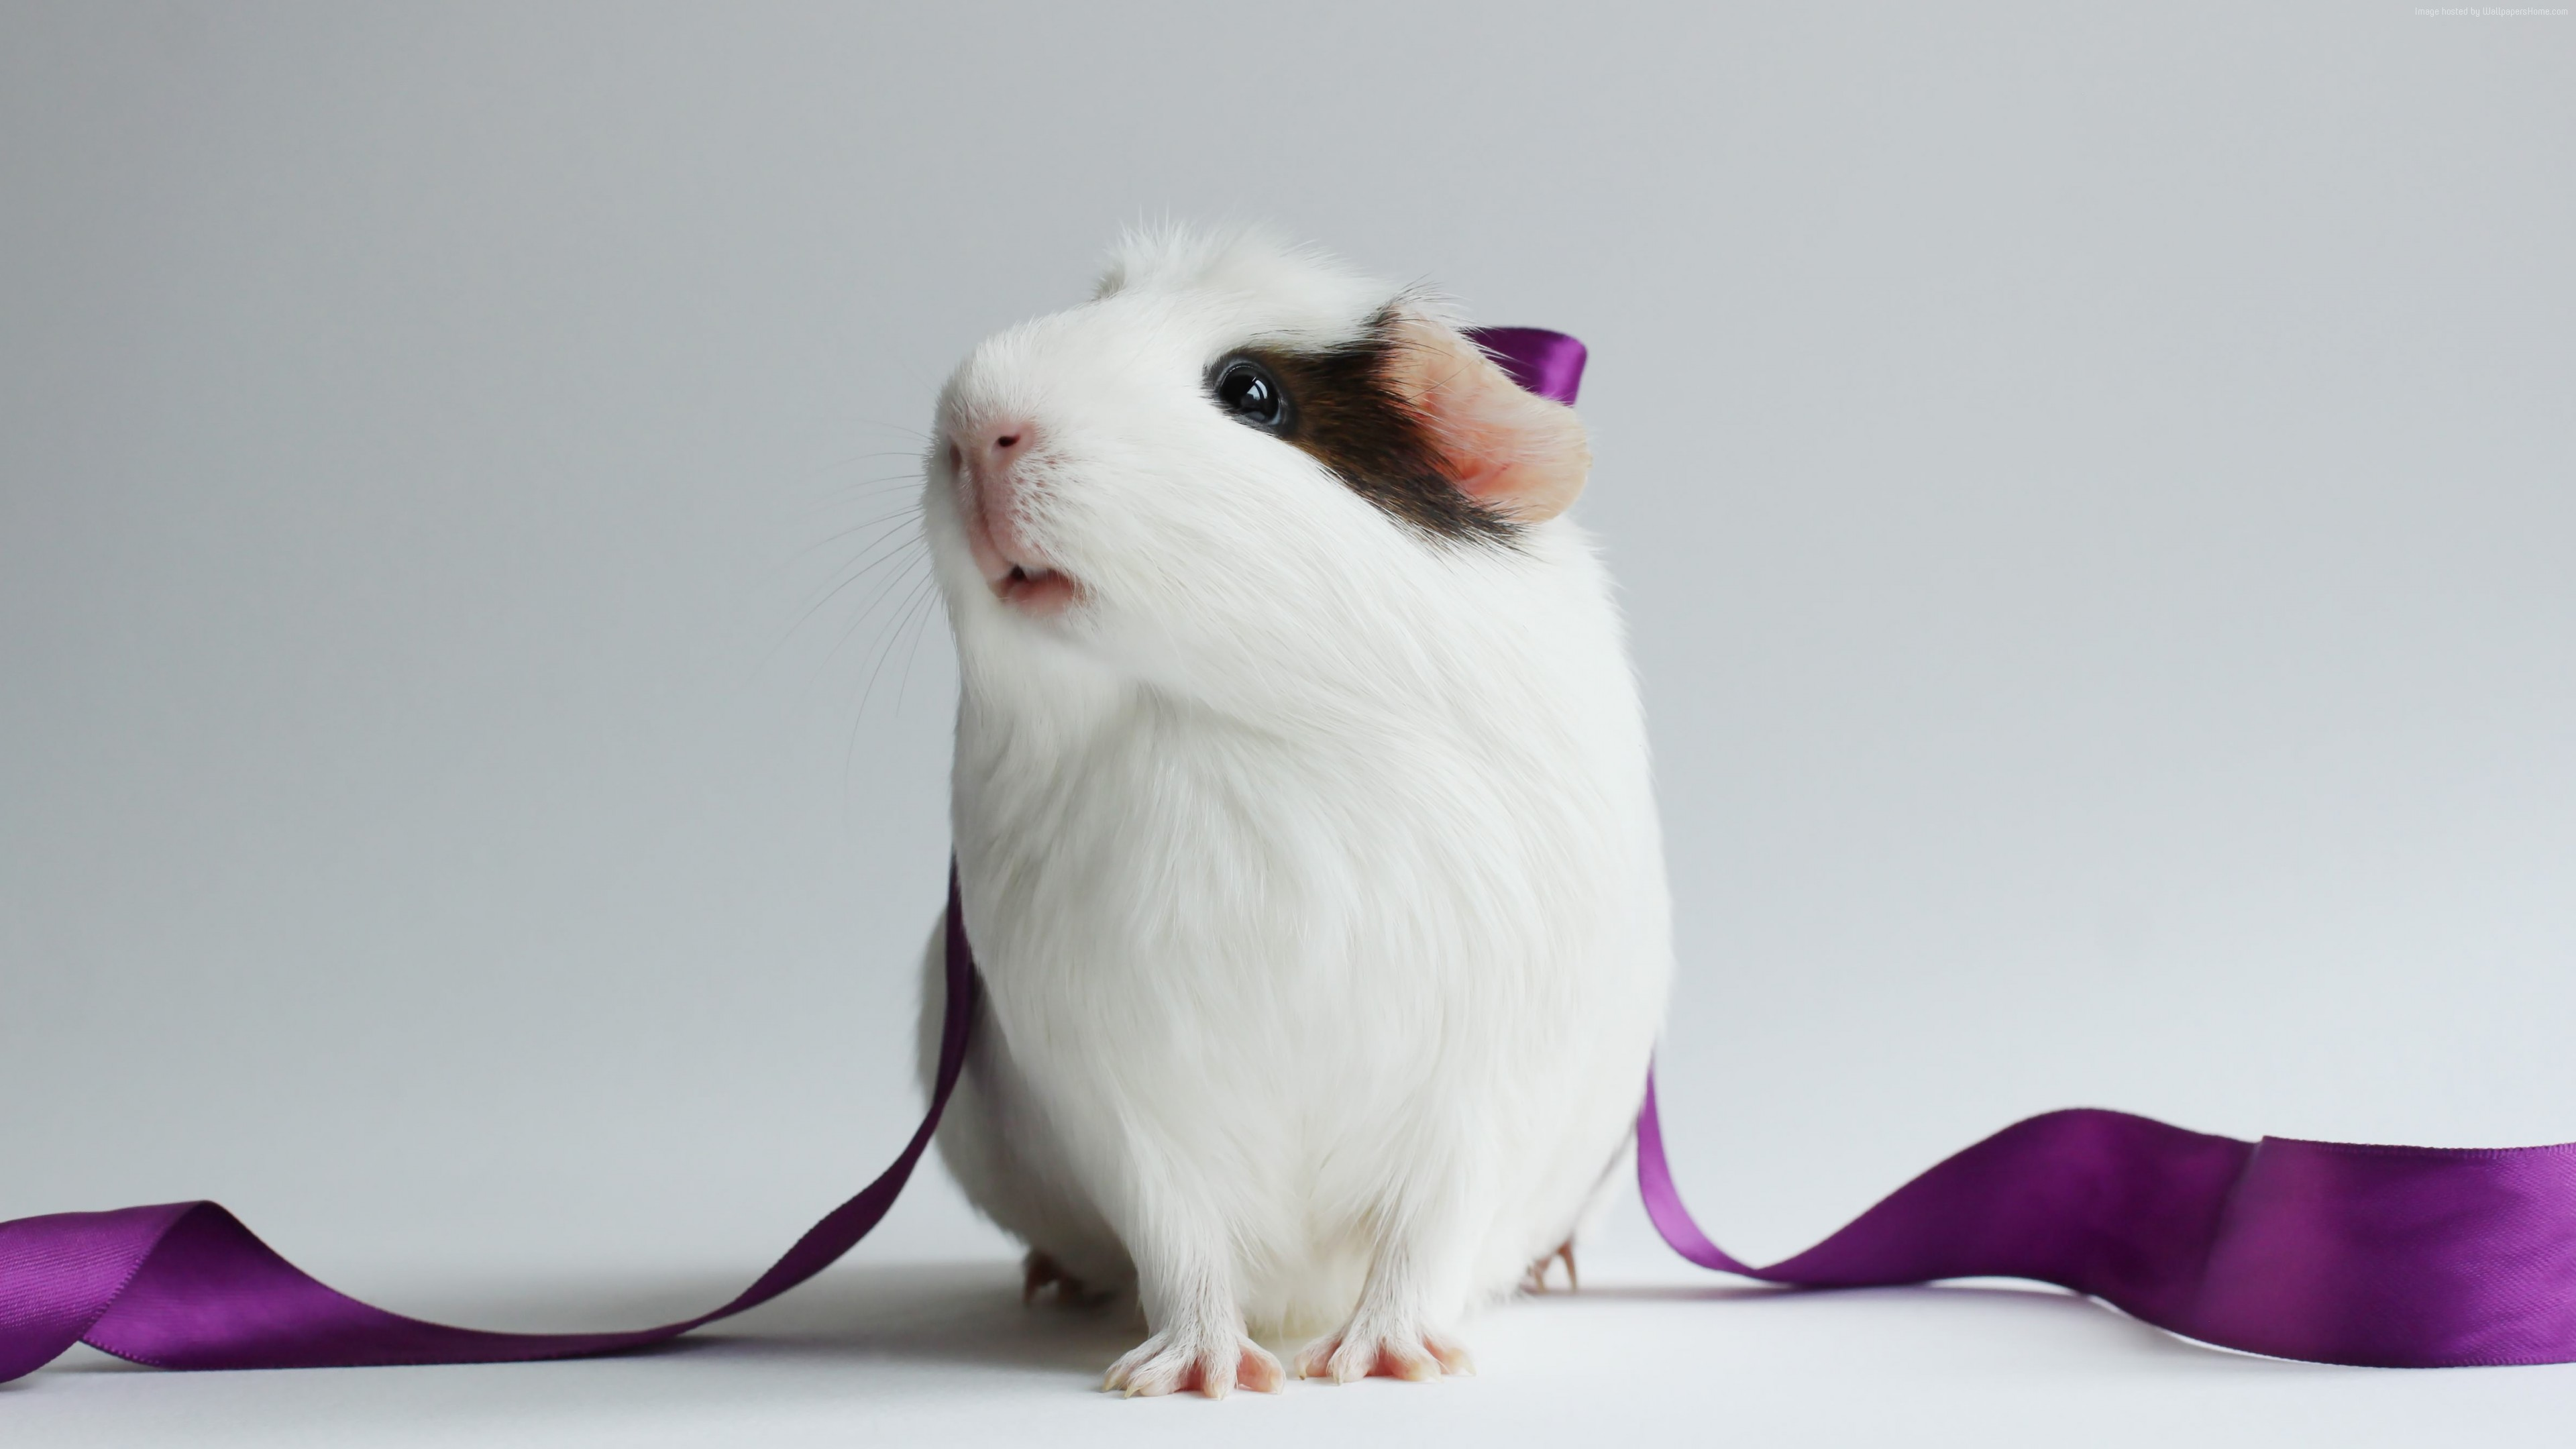 Wallpaper hamster, cute hamster, white, close-up, purple, ribbon, white background, Animals